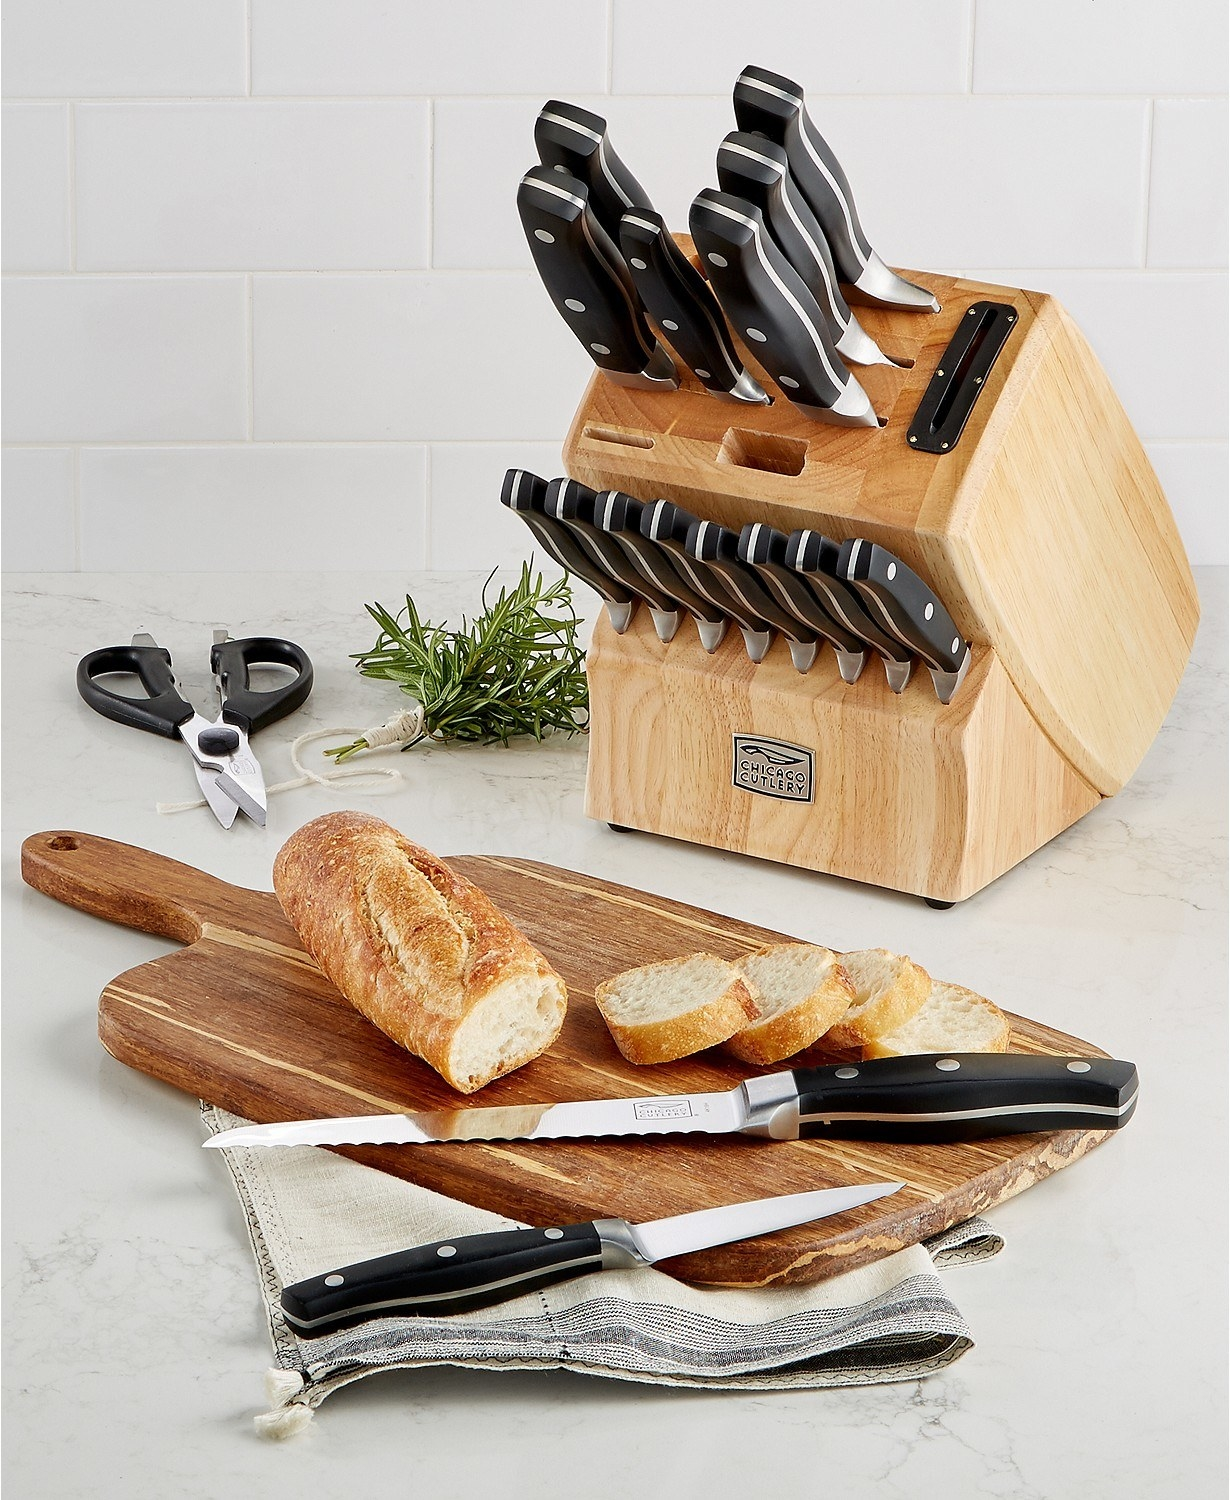 The set which comes in a butcher block and includes shears and a built-in sharpener